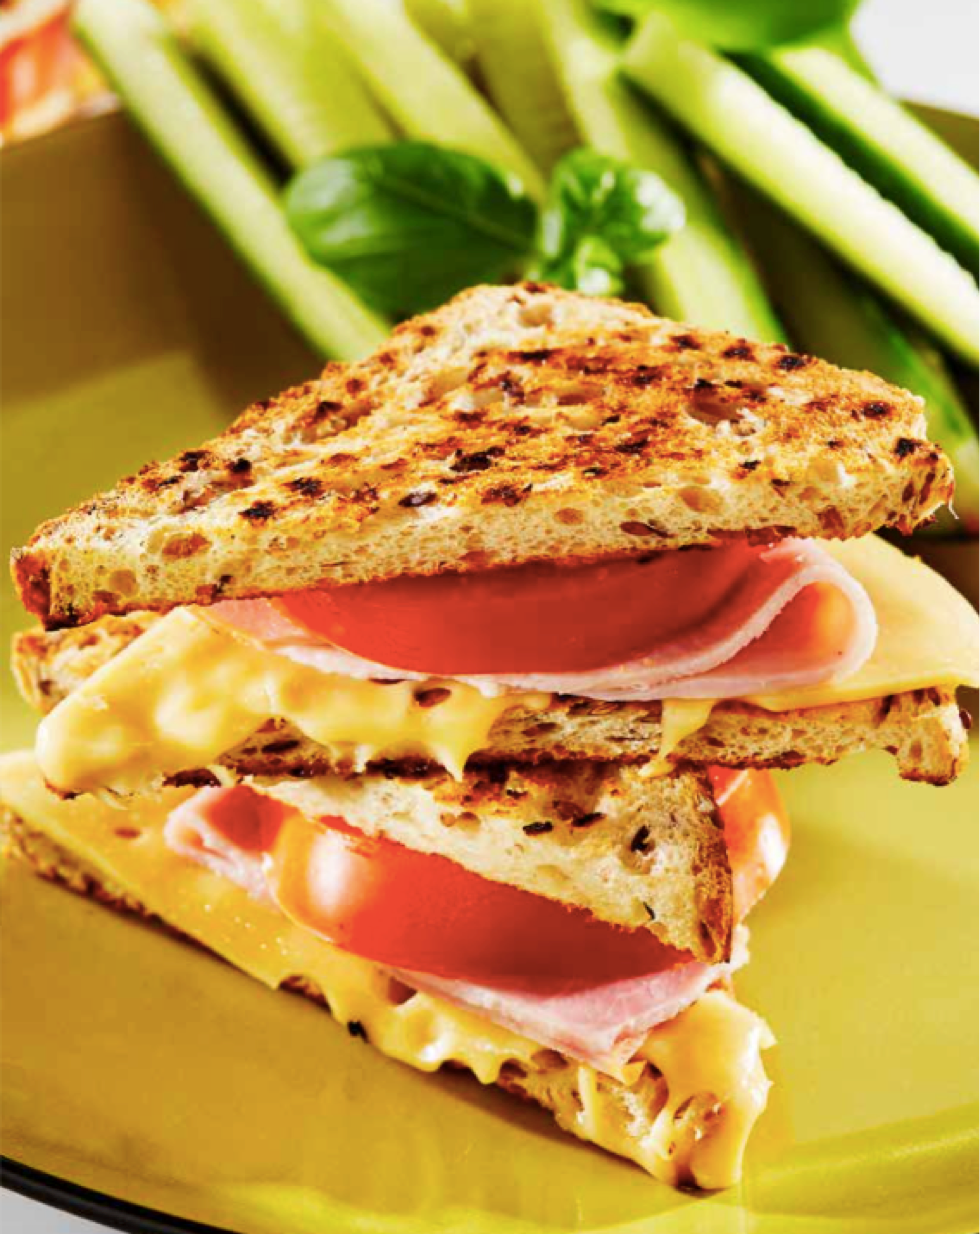 Grilled Ham, Tomato & Cheese Sandwiches with Cucumber and Tomato Salad